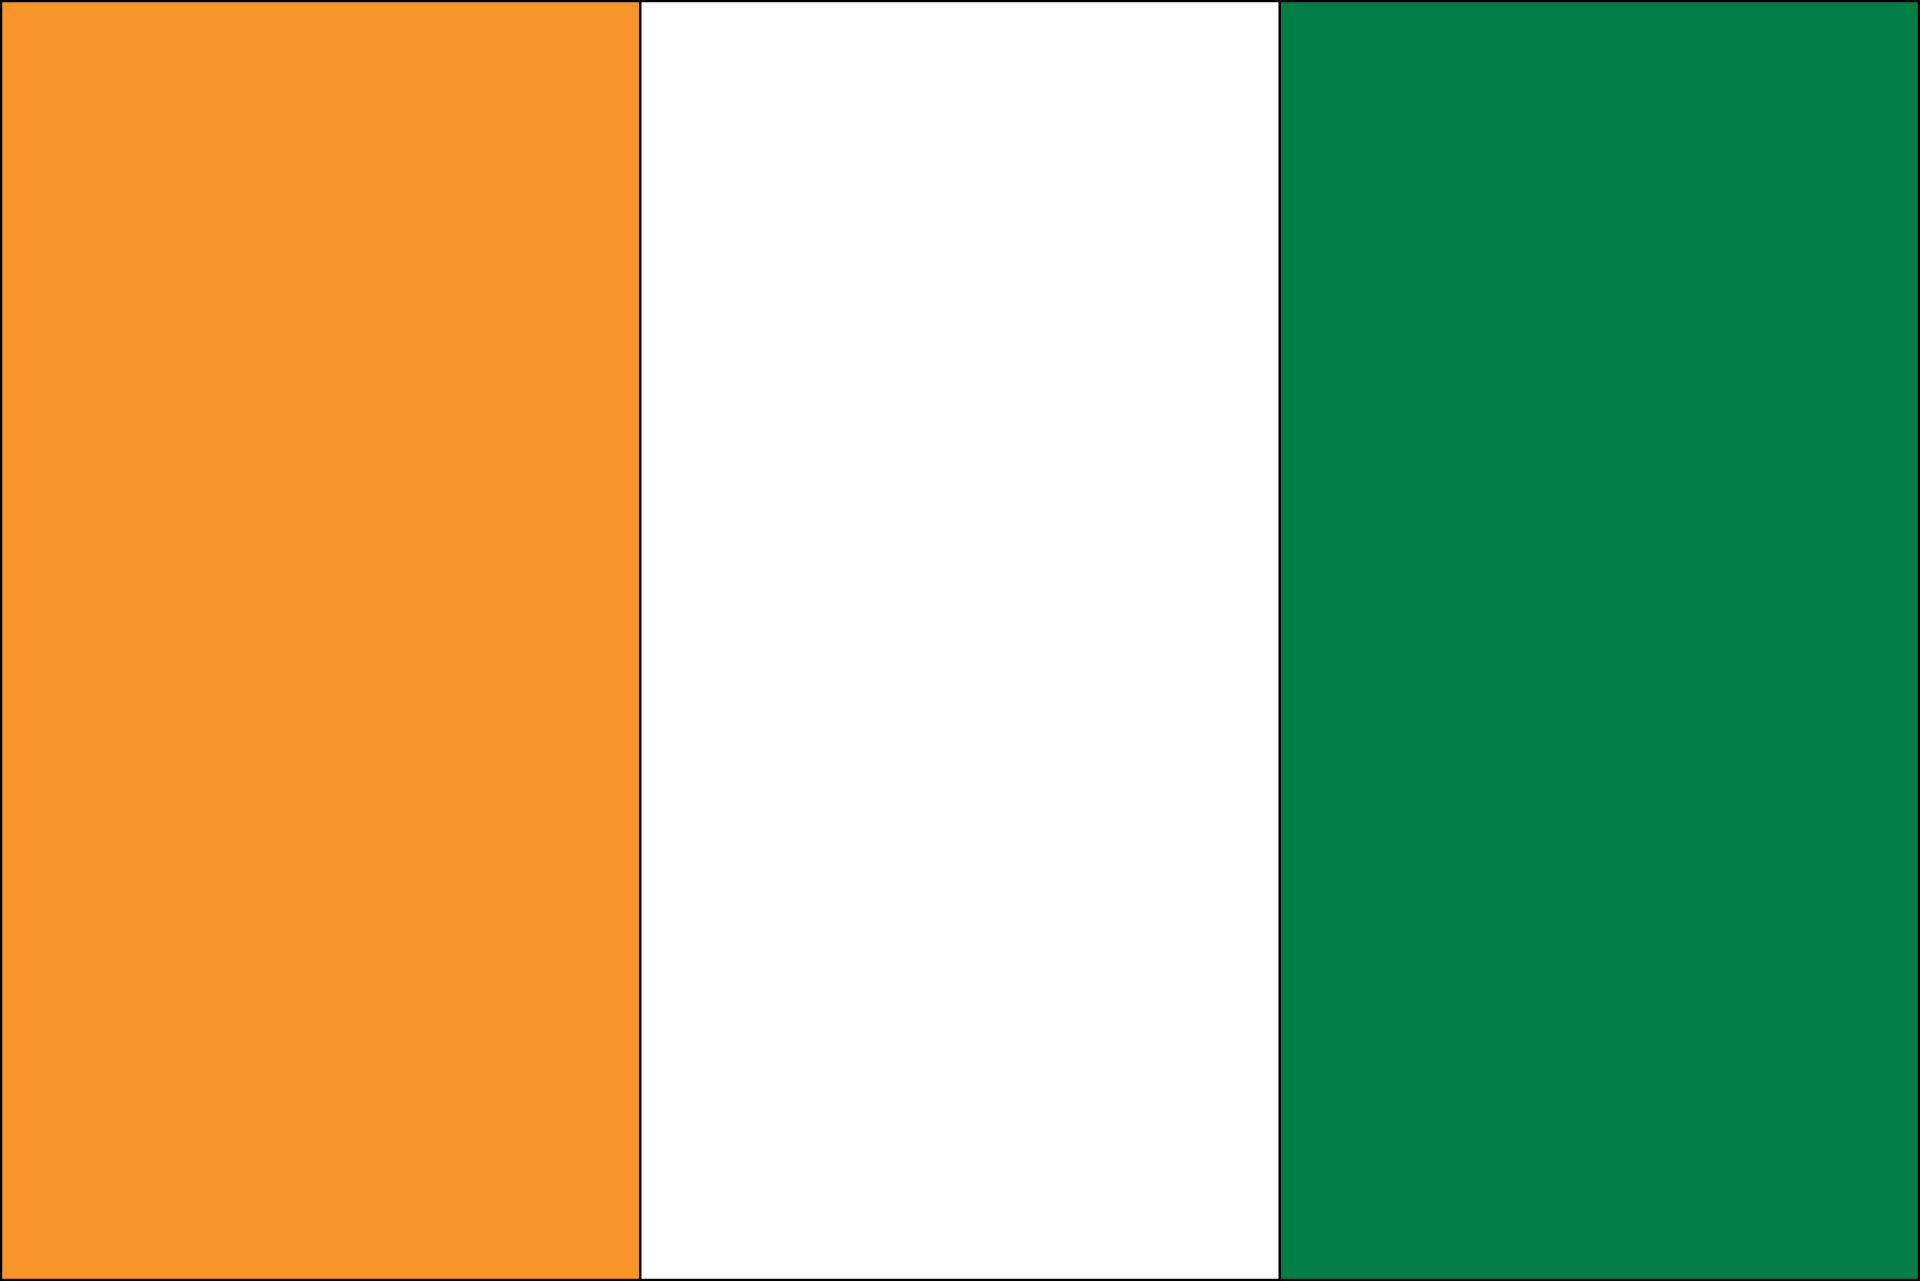 The Flag Of Ivory Coast Features Three Equal Vertical Bands Of